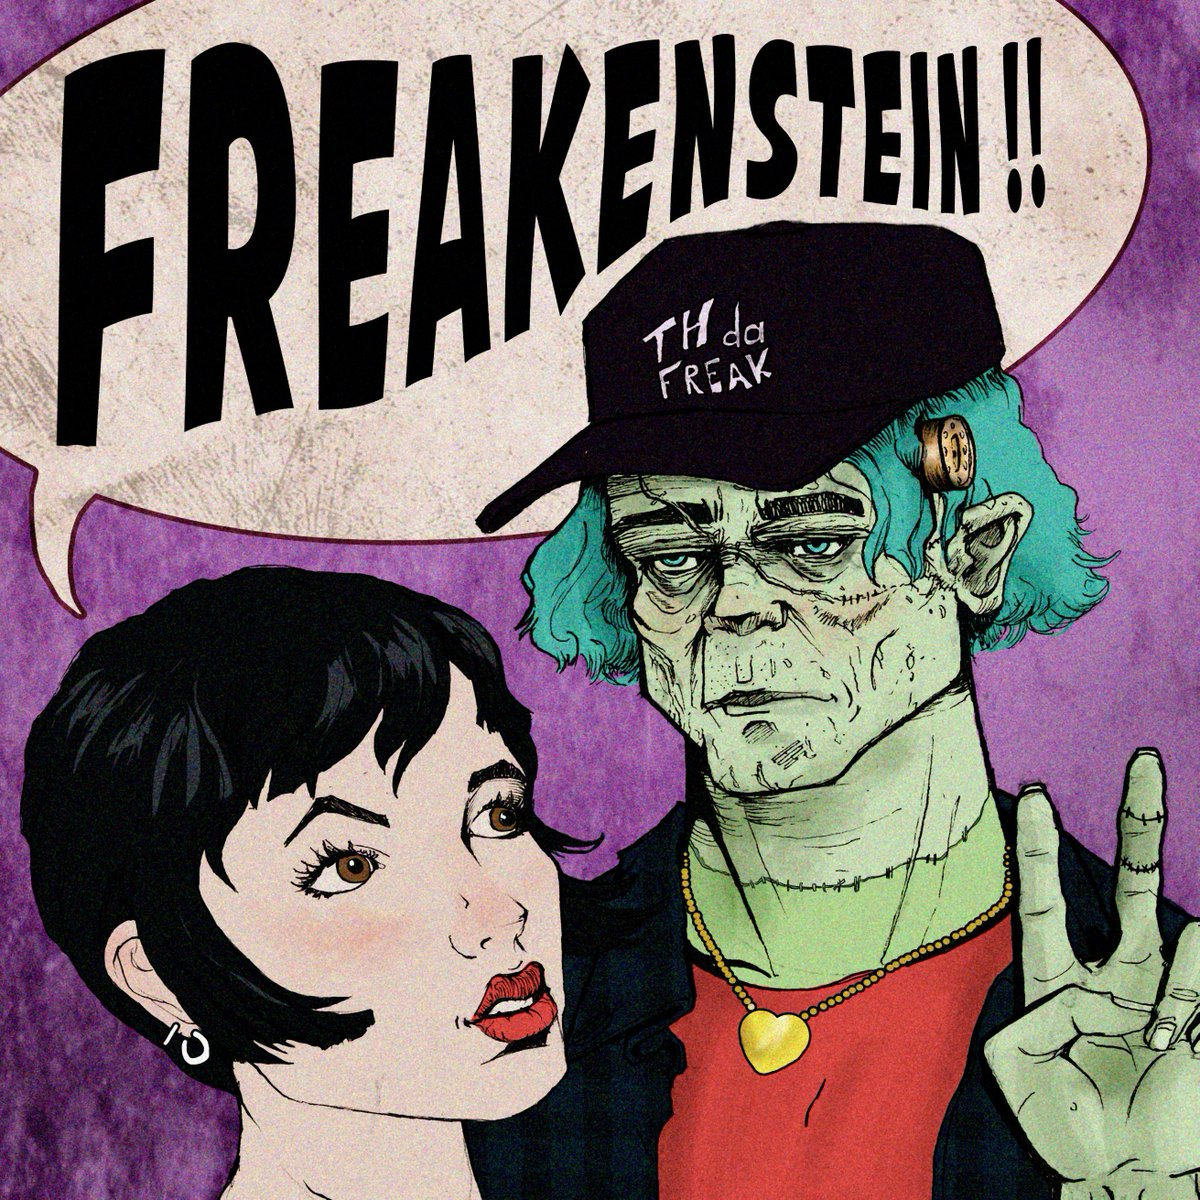 TH Da Freak Freakenstein